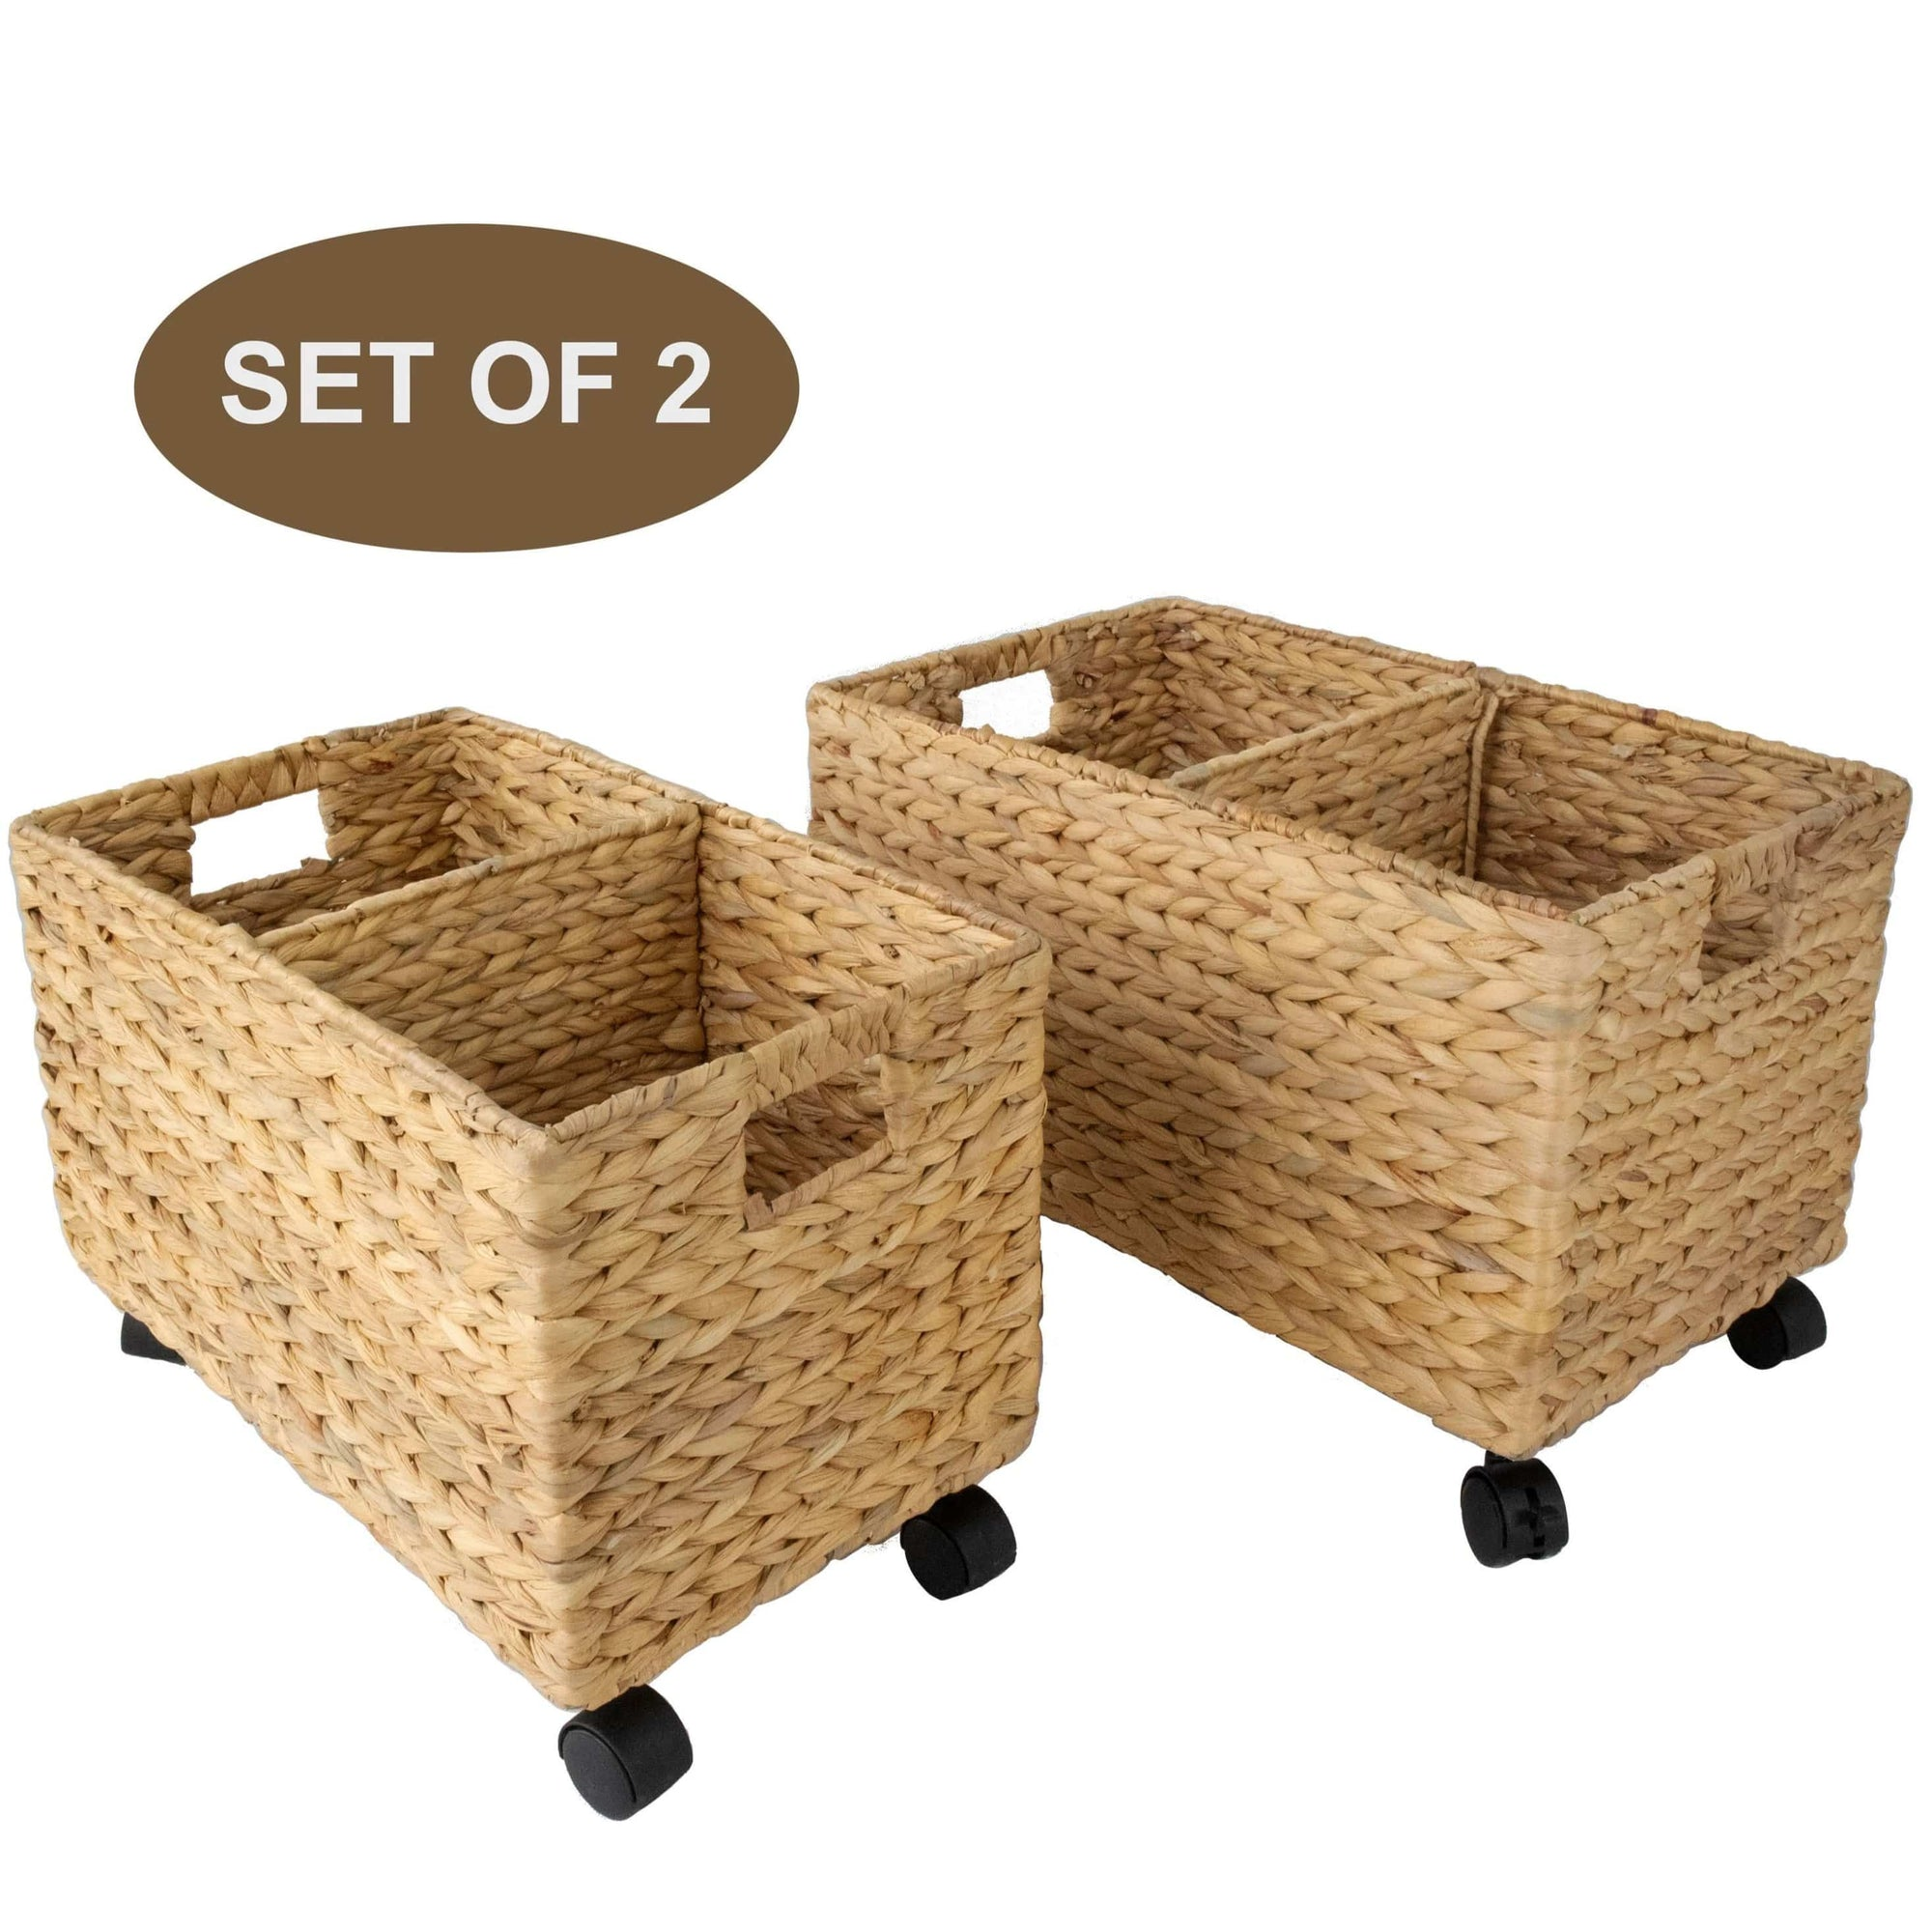 Made Terra Seagrass storage basket Fishbone Weaving Hyacinth Baskets Woven Storage Baskets on wheels | Under Bed Storage -Toy Organizer